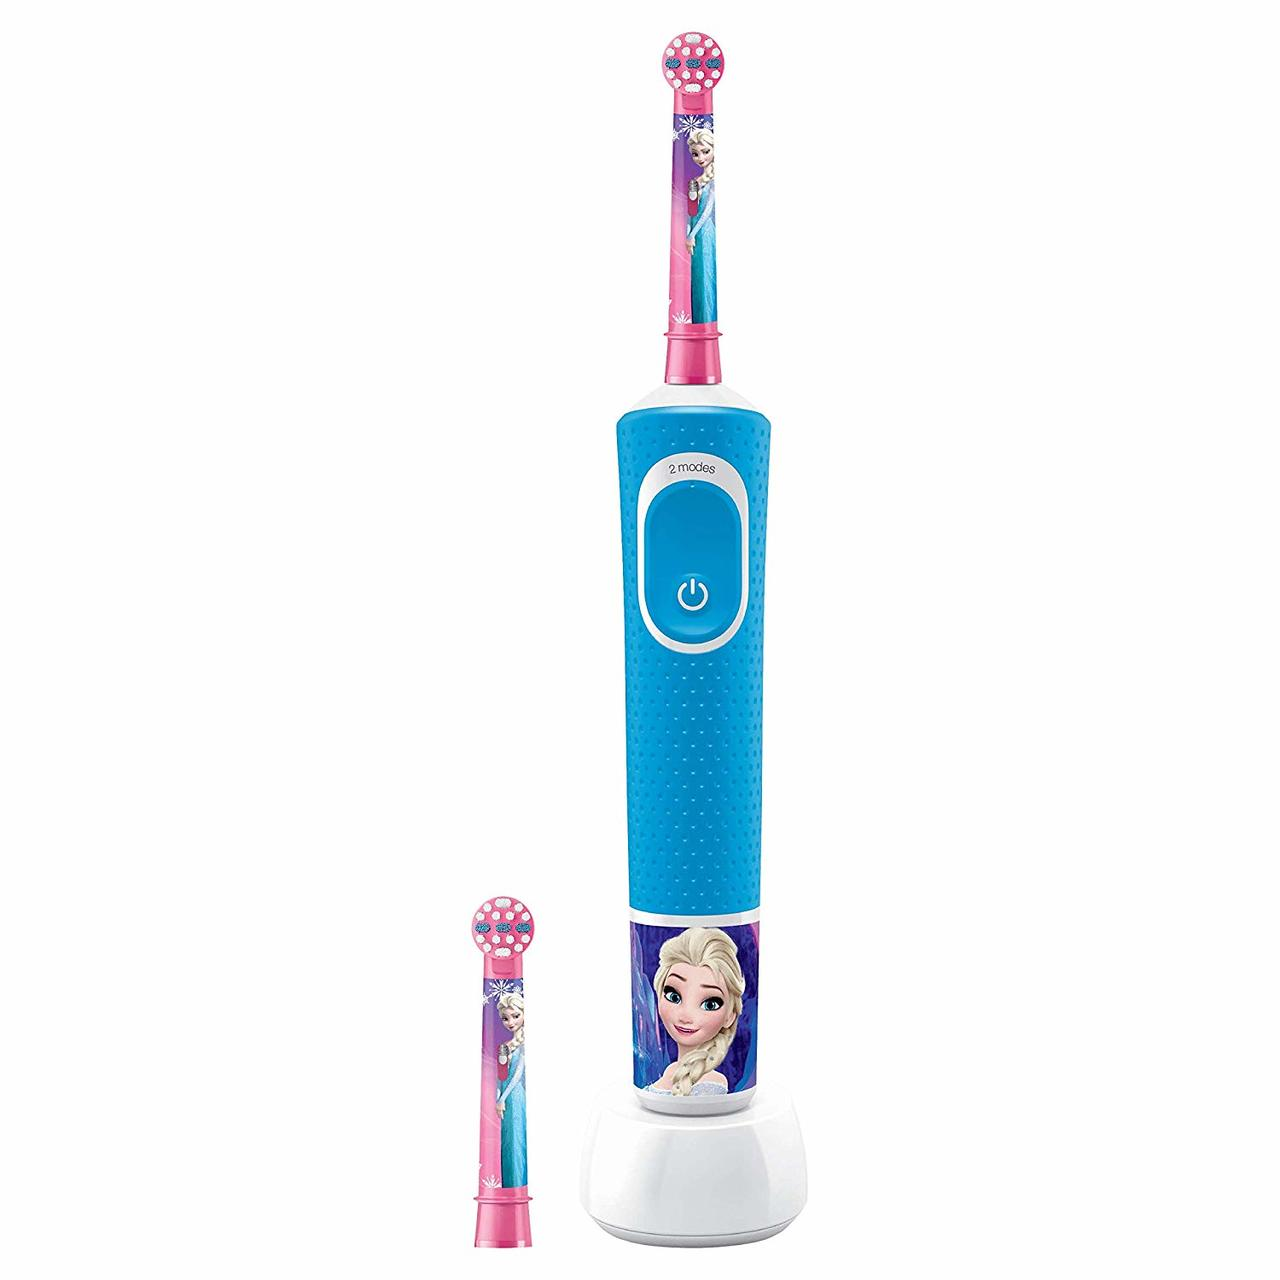 ORAL B POWER TOOTHBRUSH VITALITY FROZEN